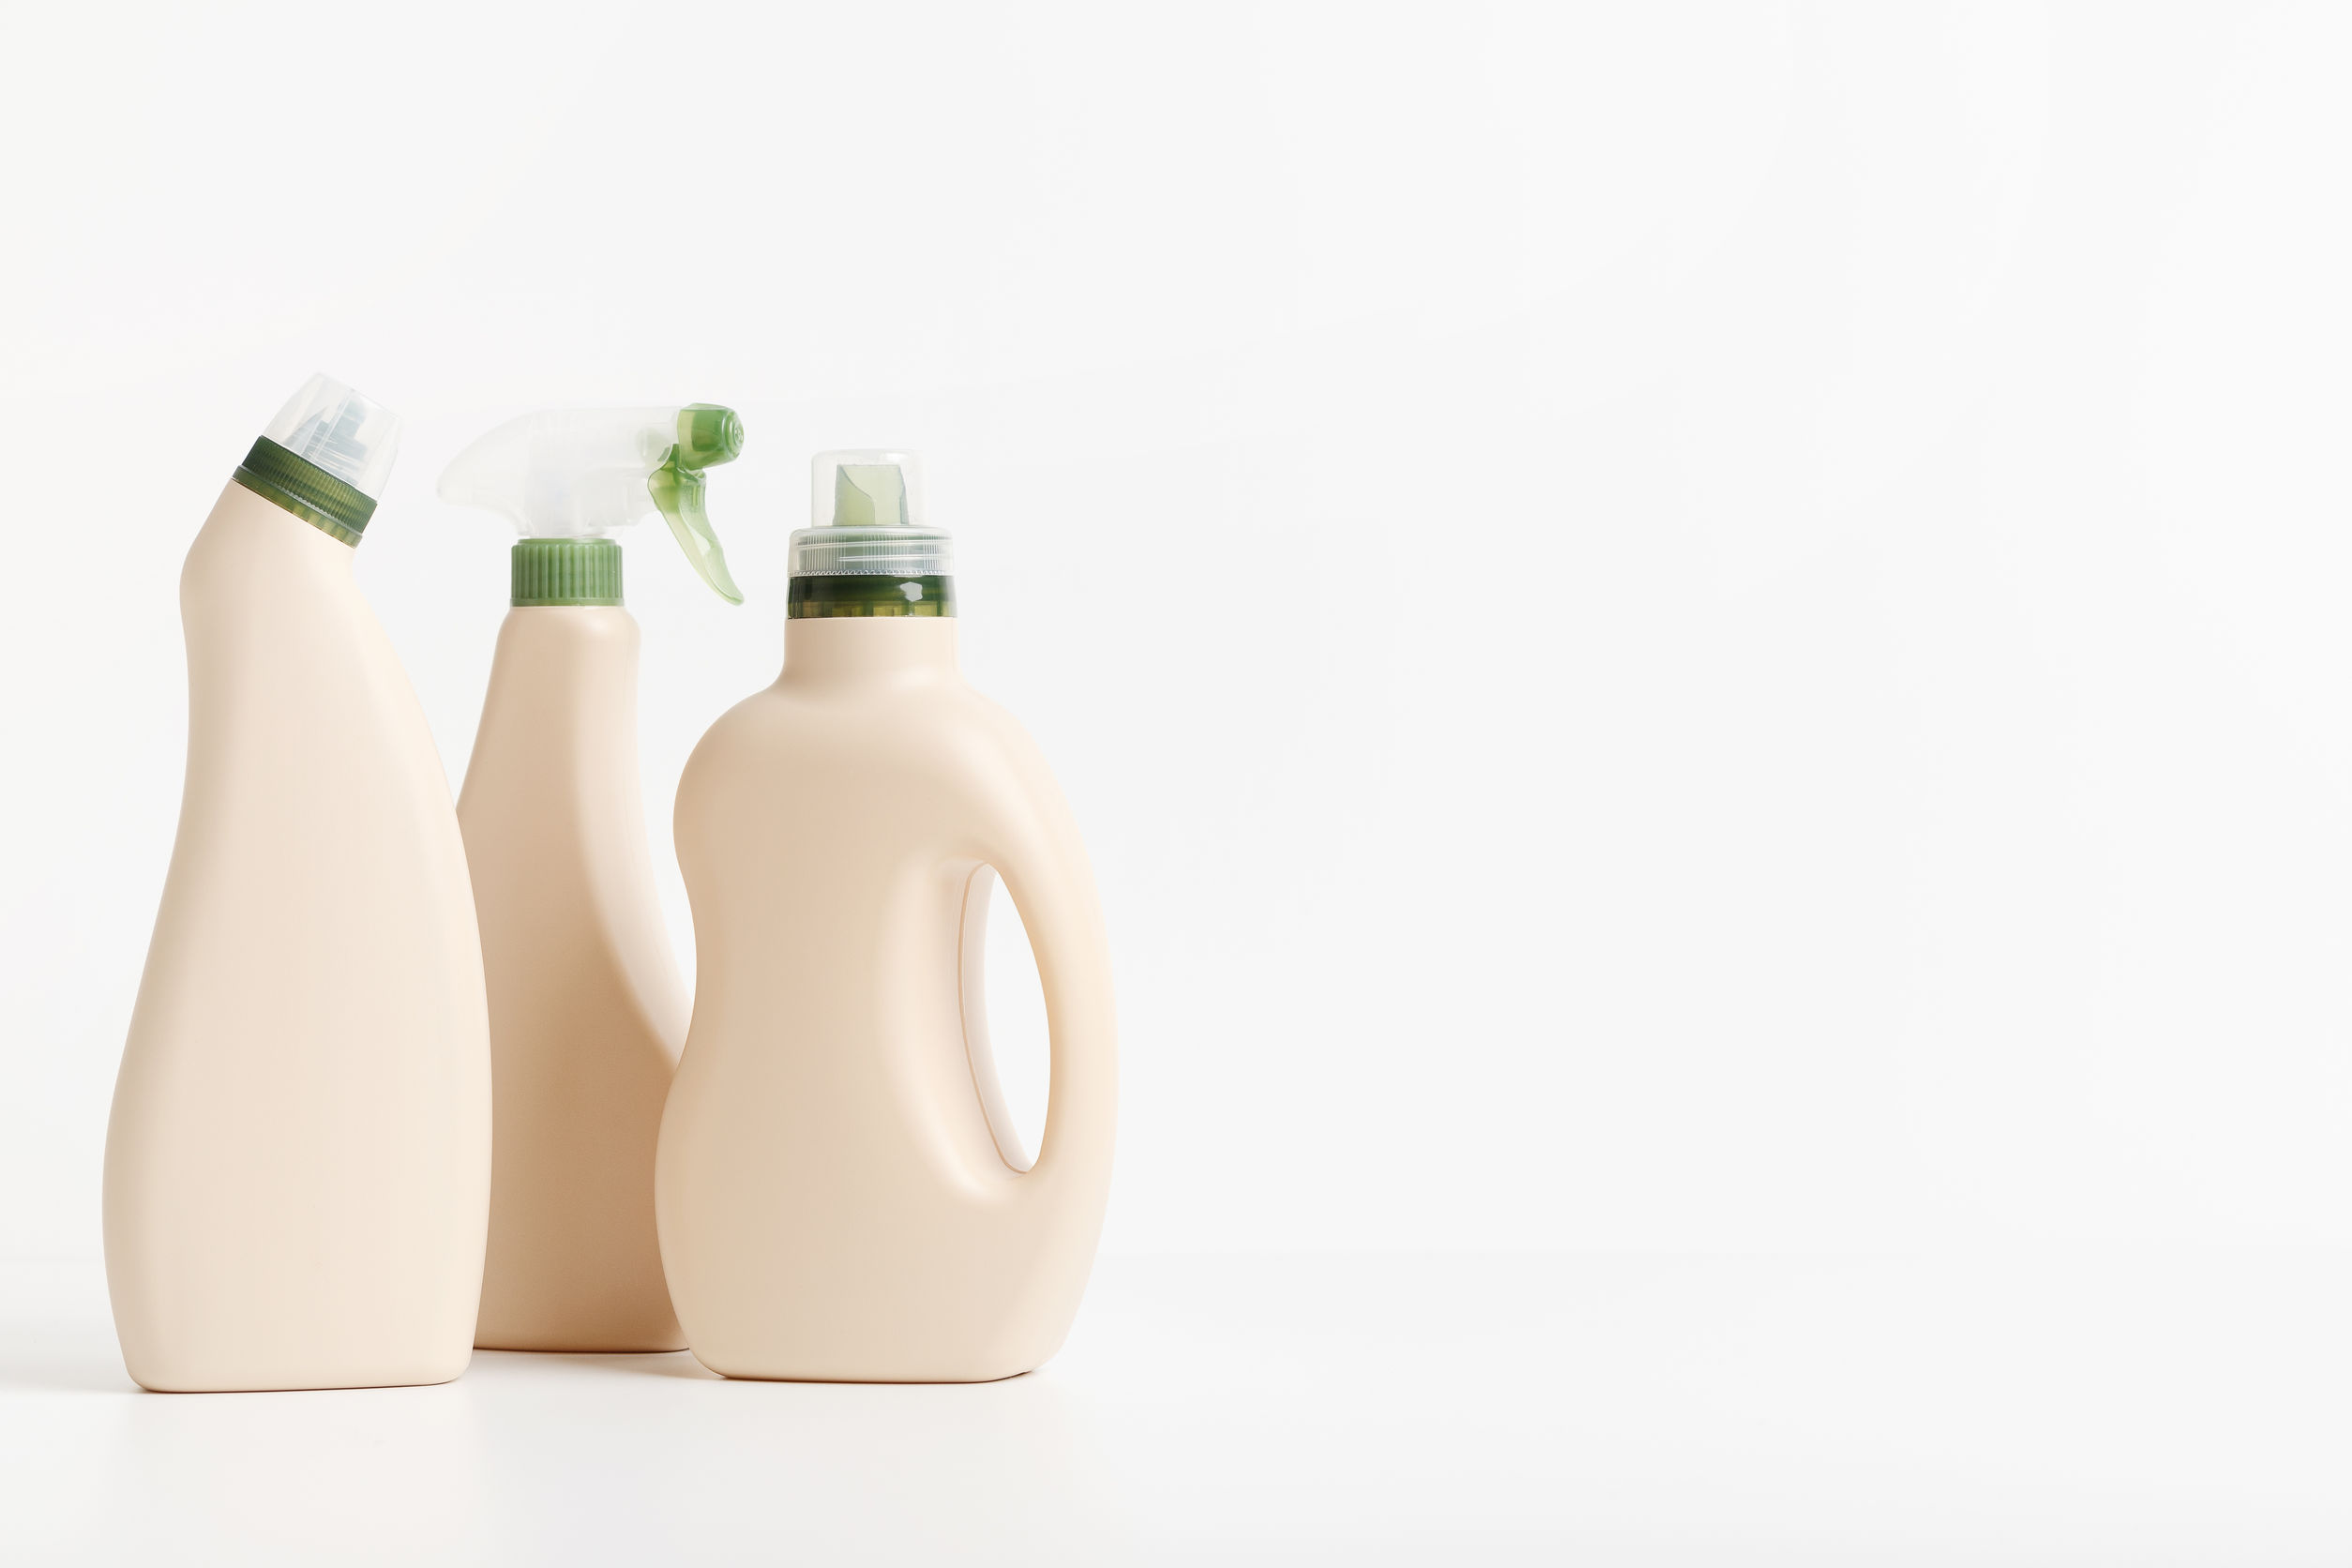 3 eco design plastic bottles of laundry products